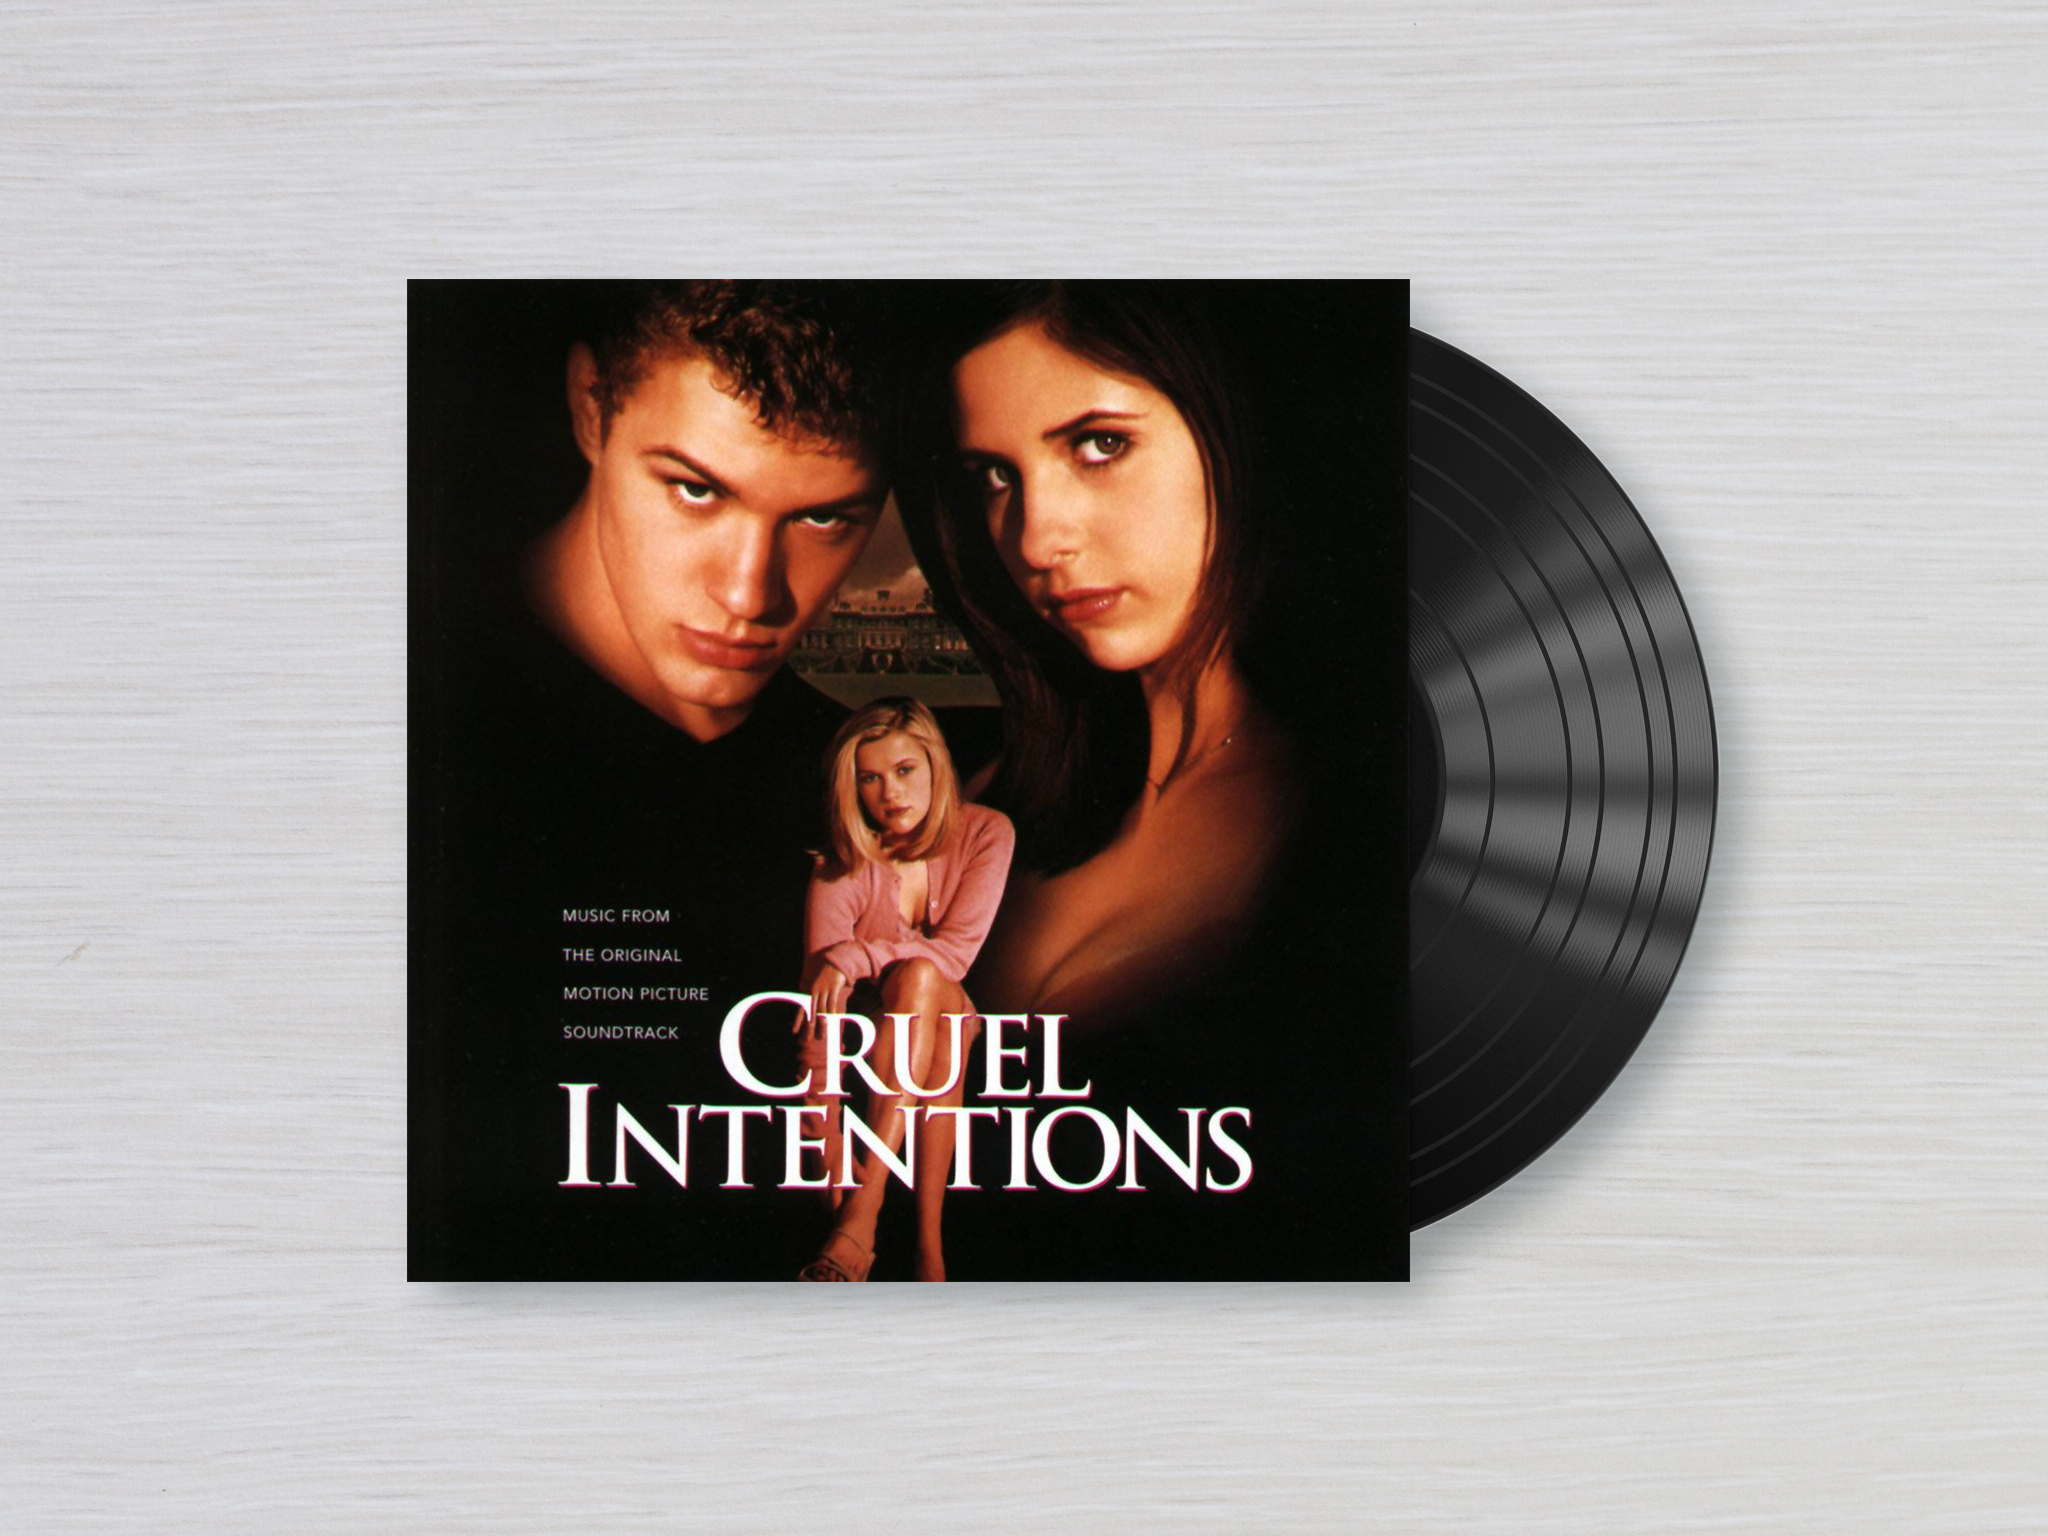 Cruel Intentions, película noventera